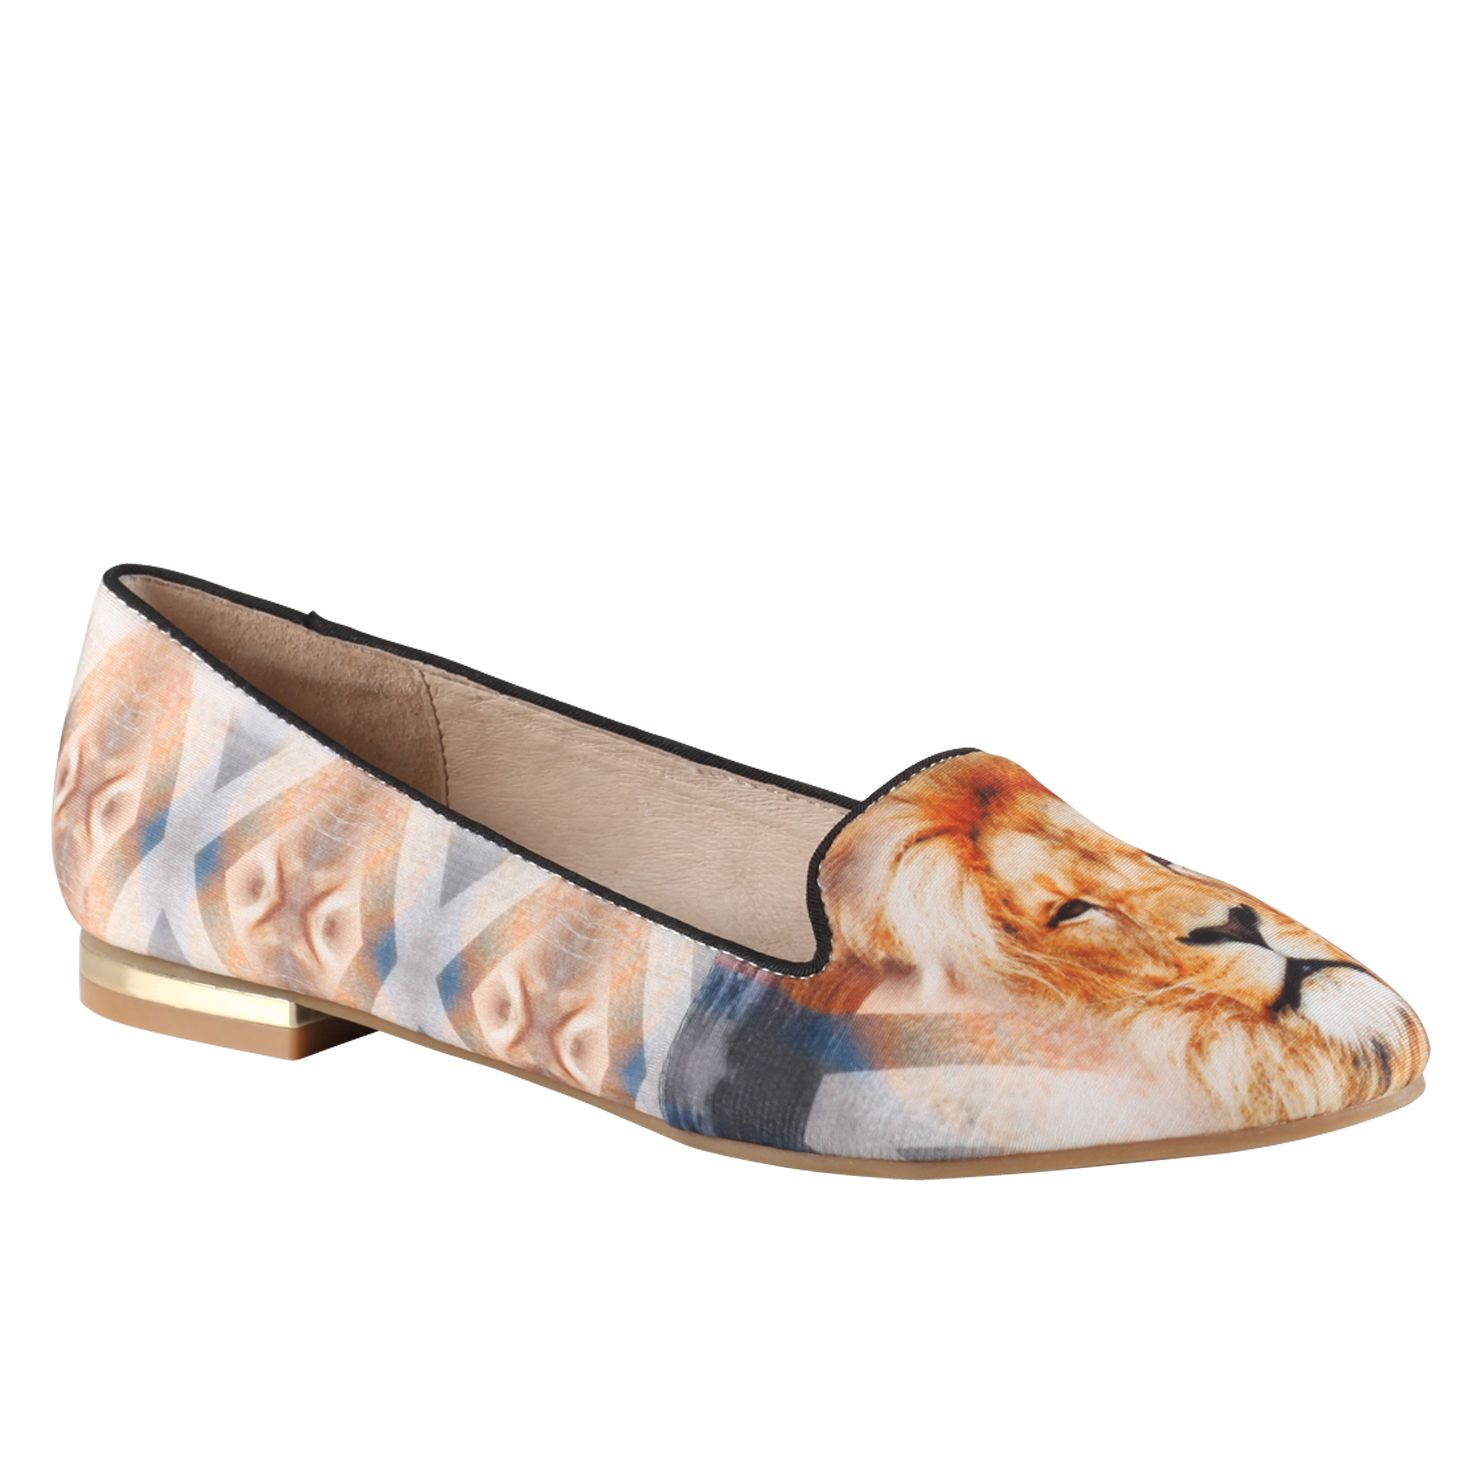 Abegaila print pump shoes